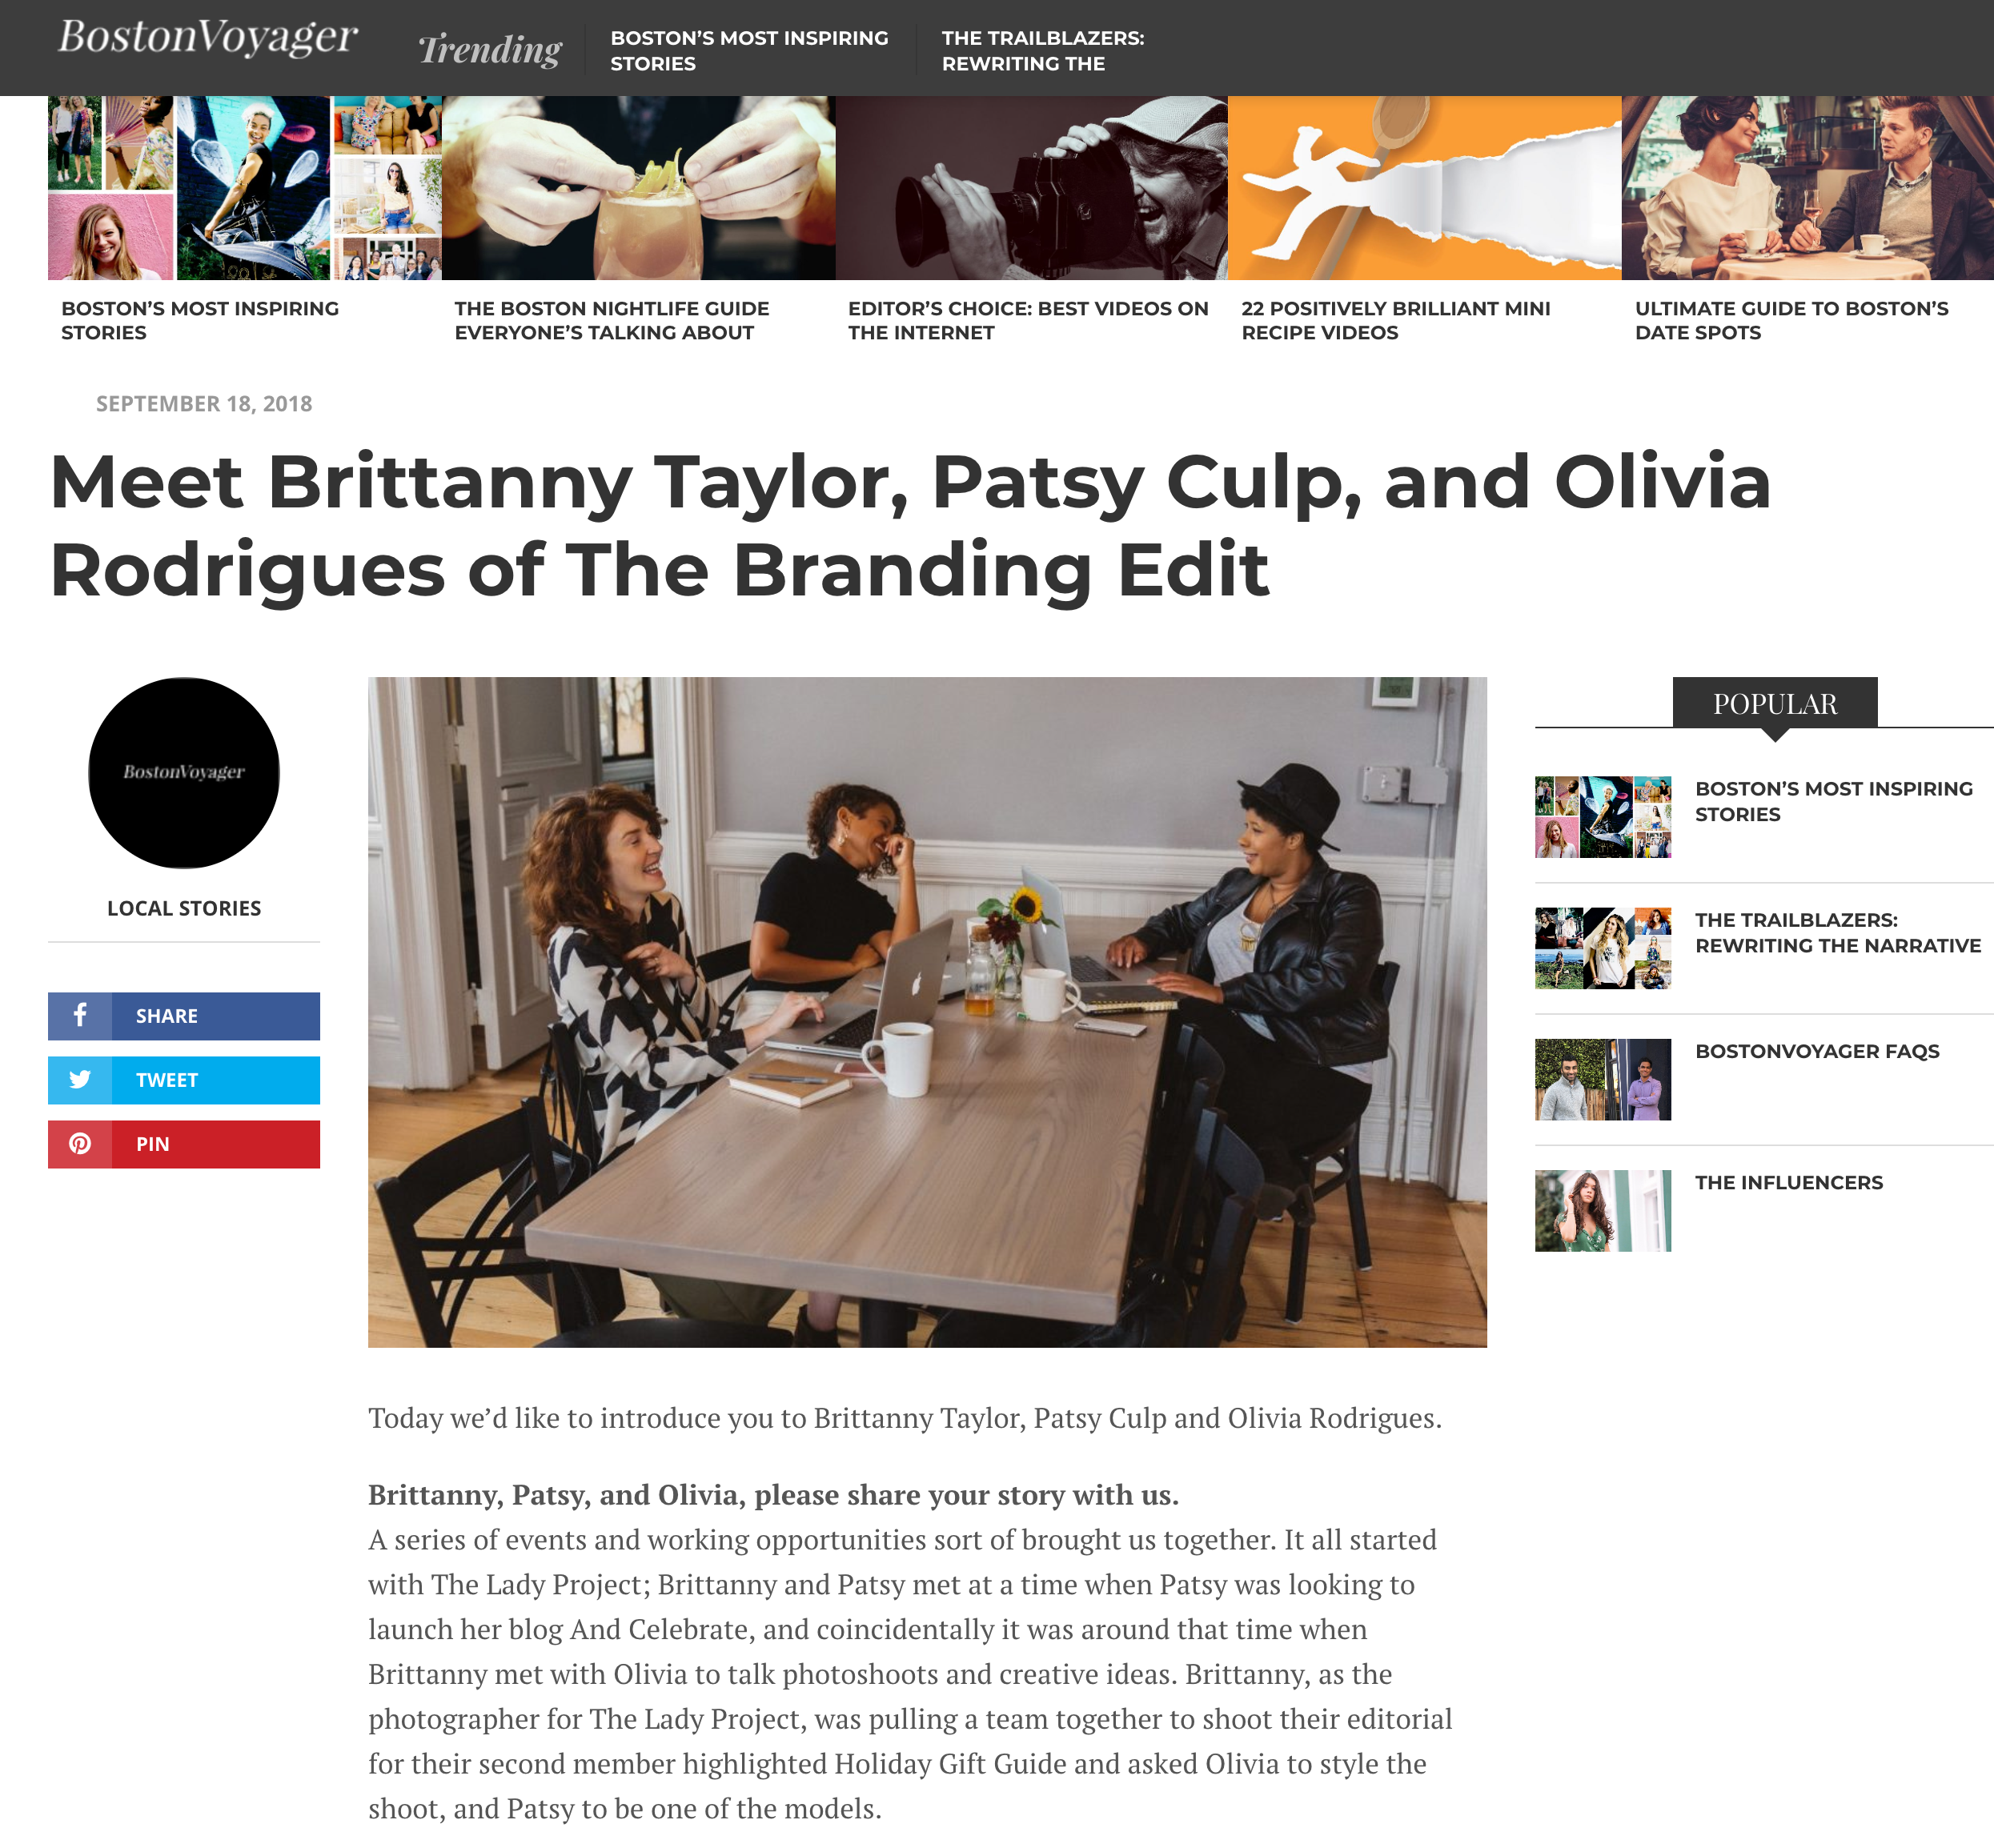 screencapture-bostonvoyager-interview-meet-branding-edit-providence-rhode-island-beyond-2018-12-05-09_42_21.png